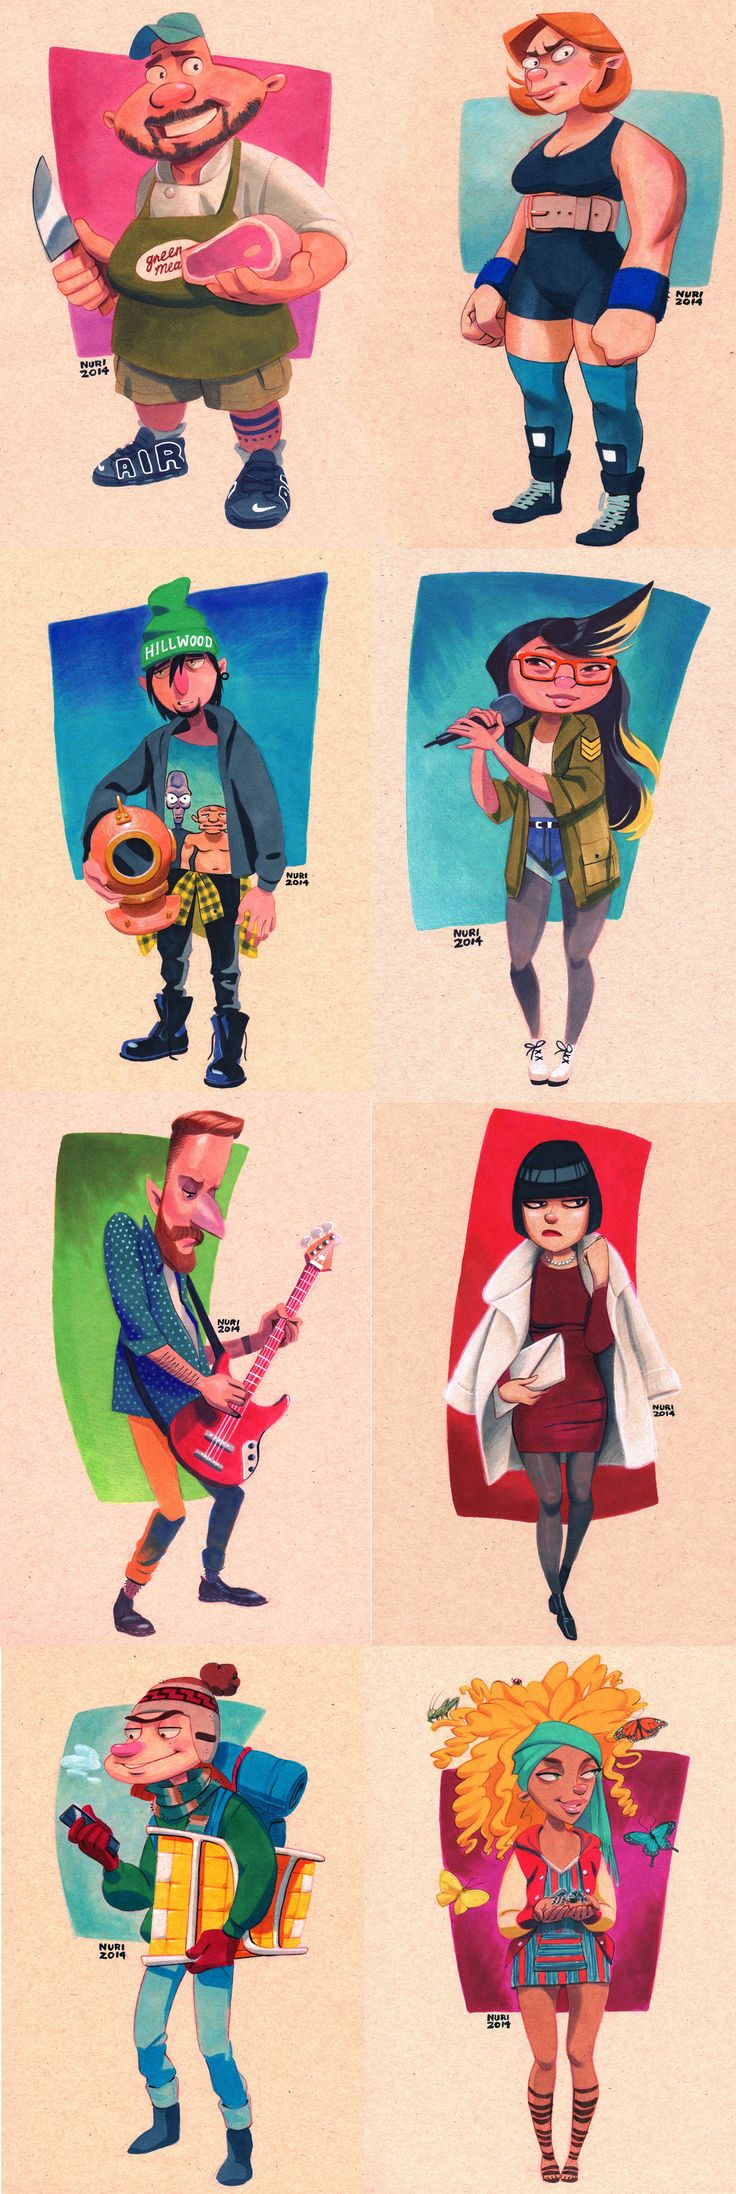 Artist Nuri Durr is giving Hey Arnold! a revival with drawings depicting the characters as 20-somethings.